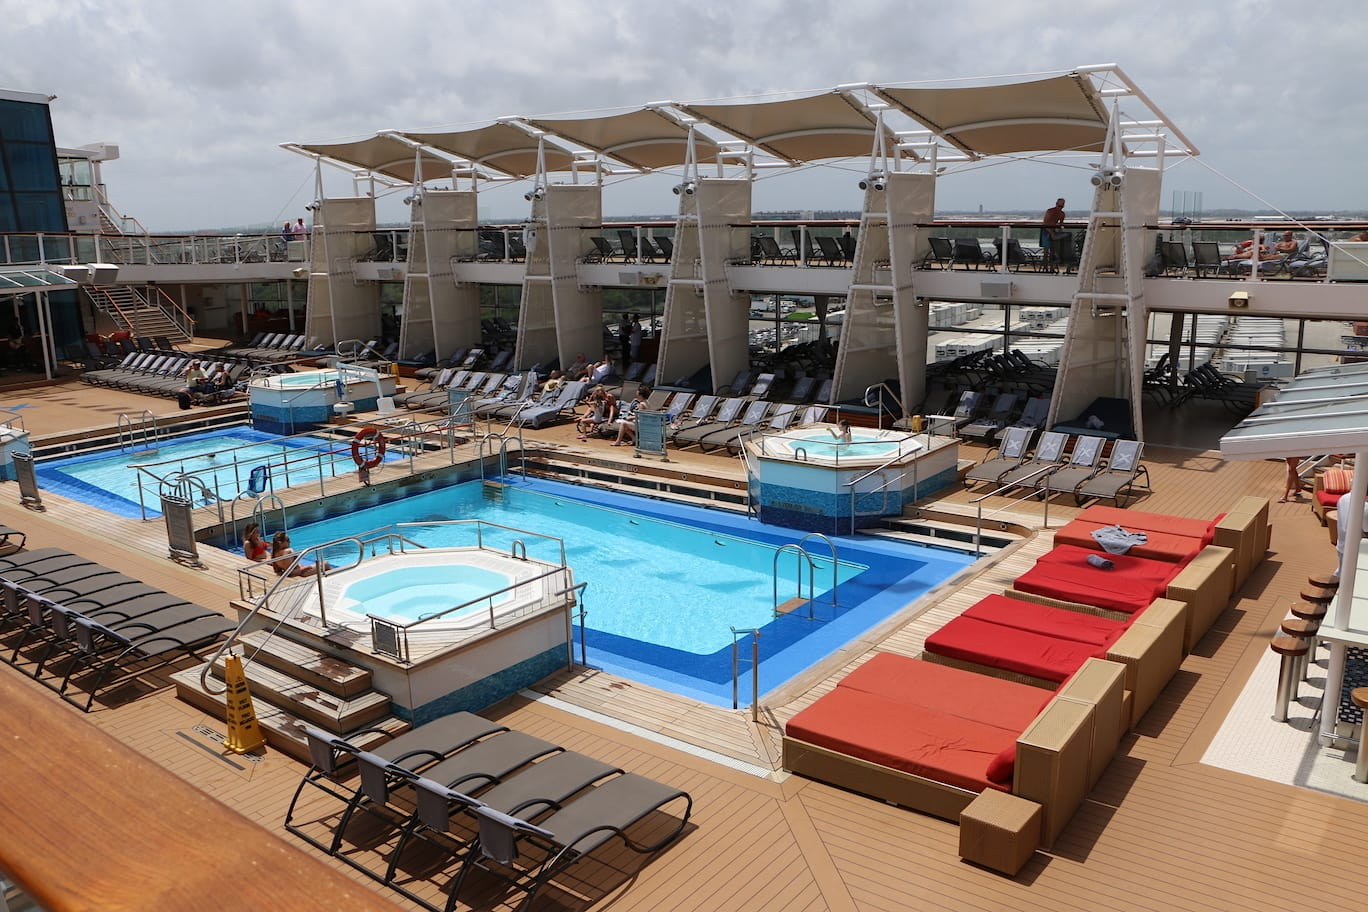 Nice and quiet at the pool deck